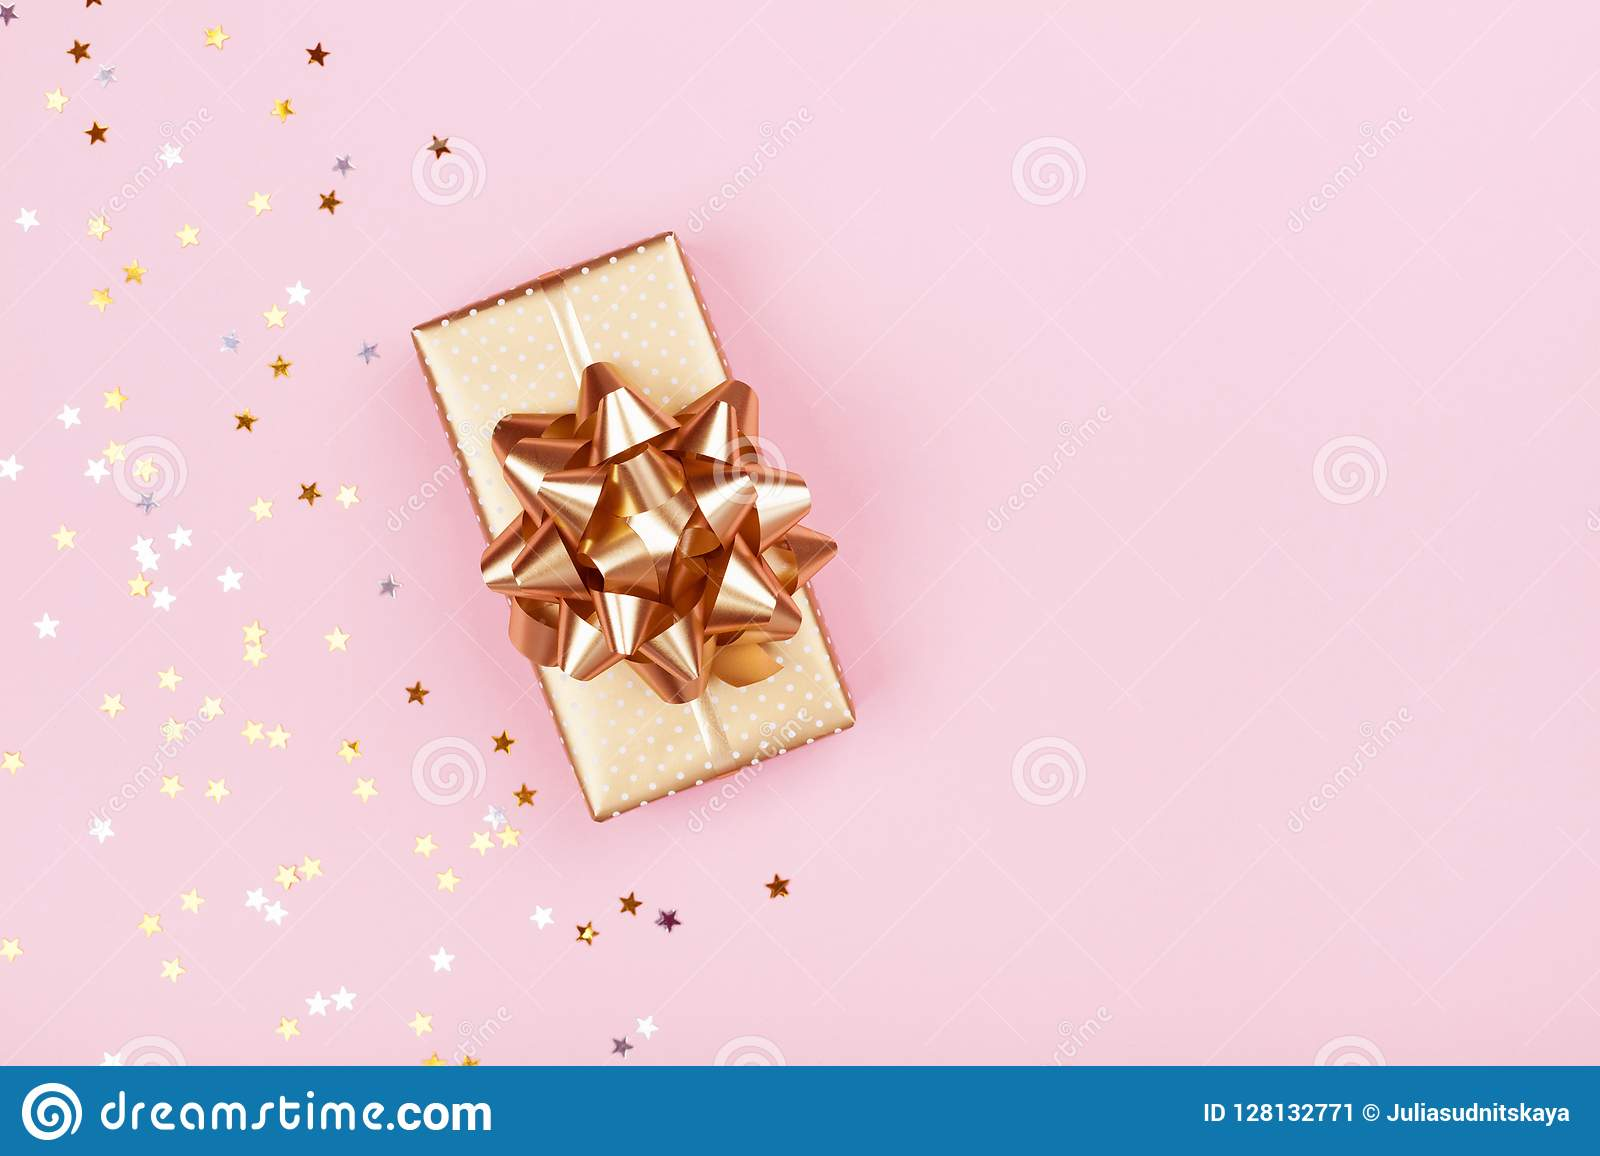 Golden Gift Or Present Box And Stars Confetti On Pink Background Top View Flat Lay Composition For Birthday Christmas Wedding